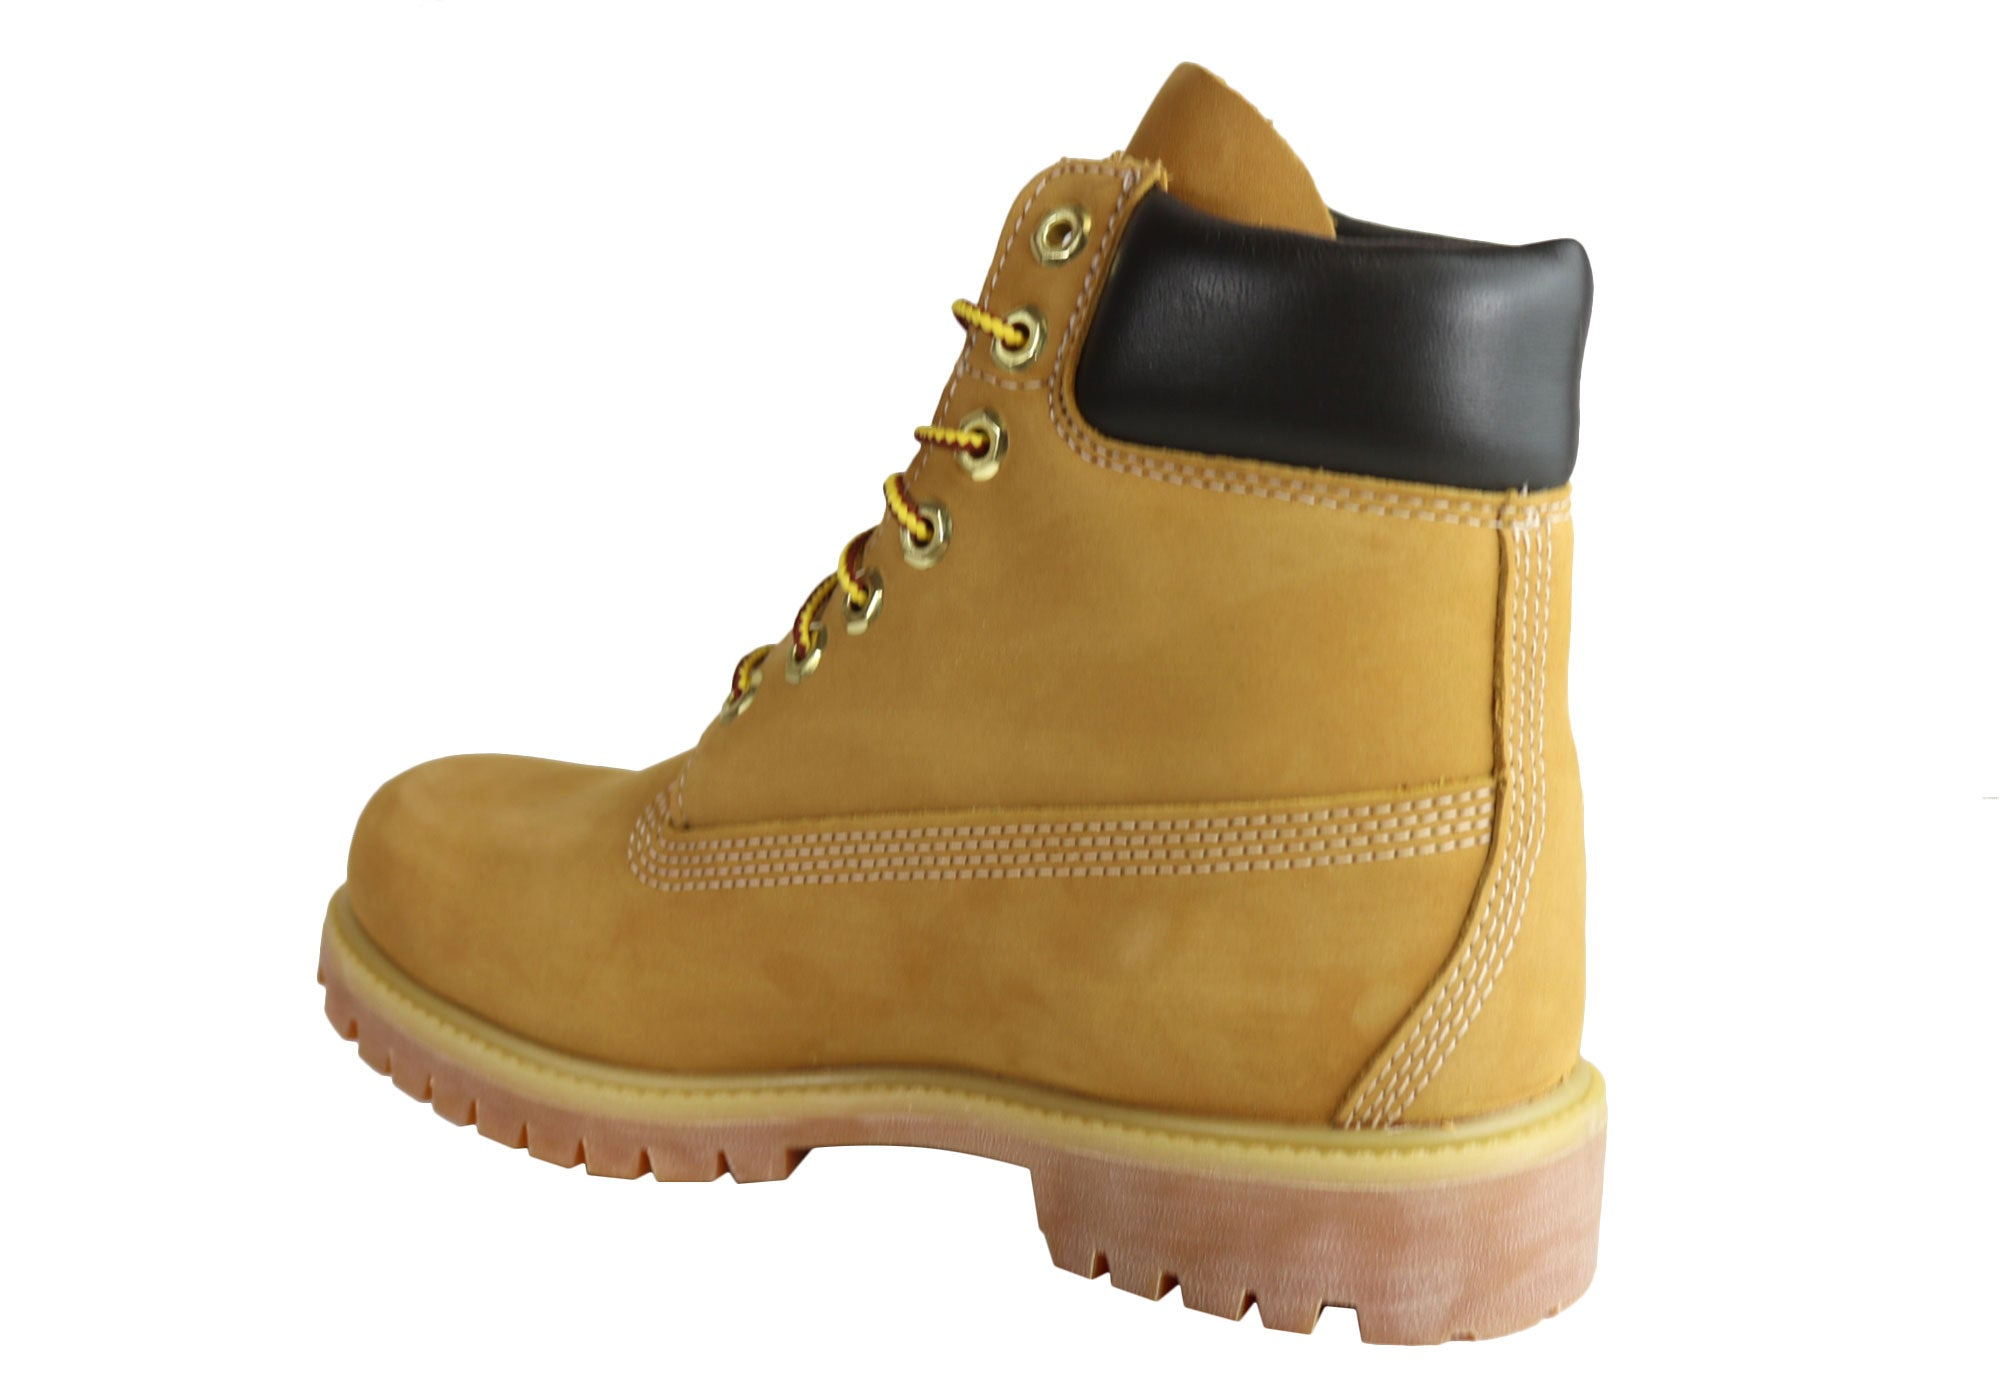 NEW-TIMBERLAND-MENS-COMFORTABLE-LACE-UP-6-INCH-PREMIUM-WATERPROOF-BOOTS thumbnail 11